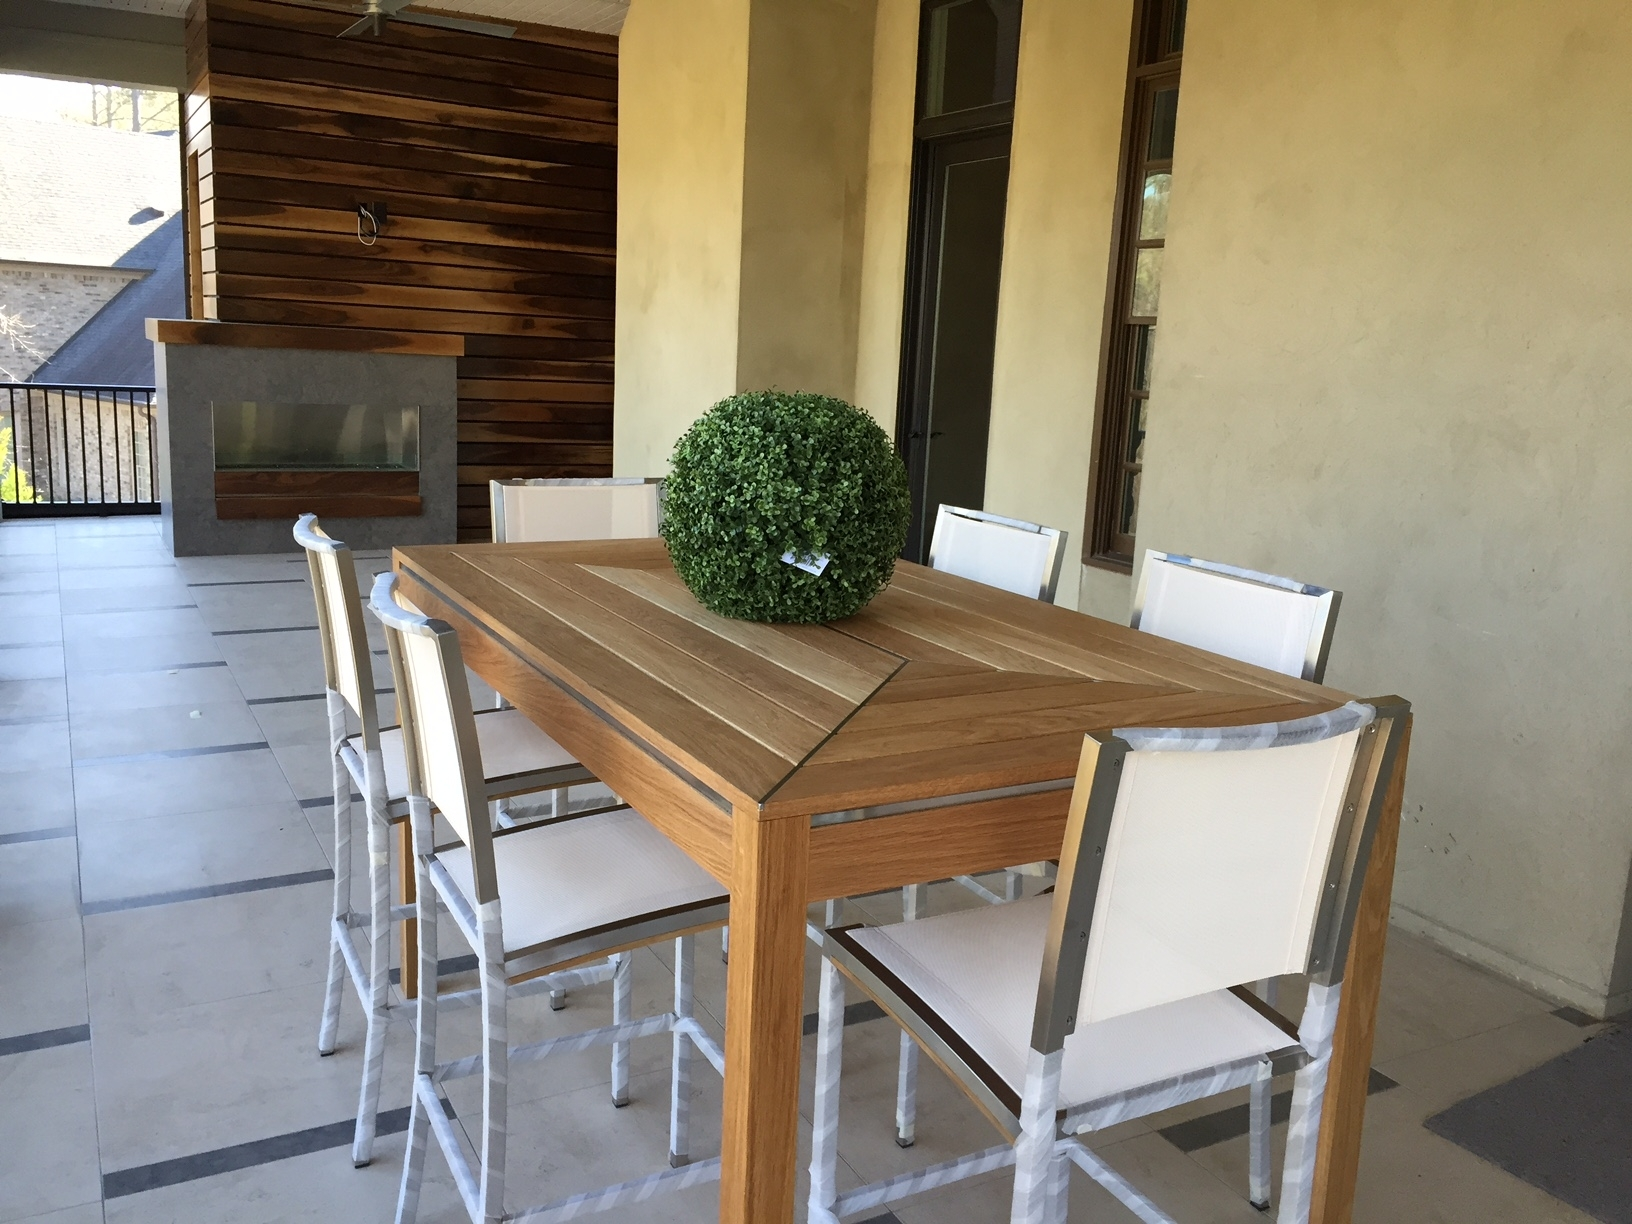 Image of: White Oak Outdoor Table With Stainless Steel Inlay Two Chair With Regard To White Oak Outdoor Furniture Good Protector For White Oak Outdoor Furniture